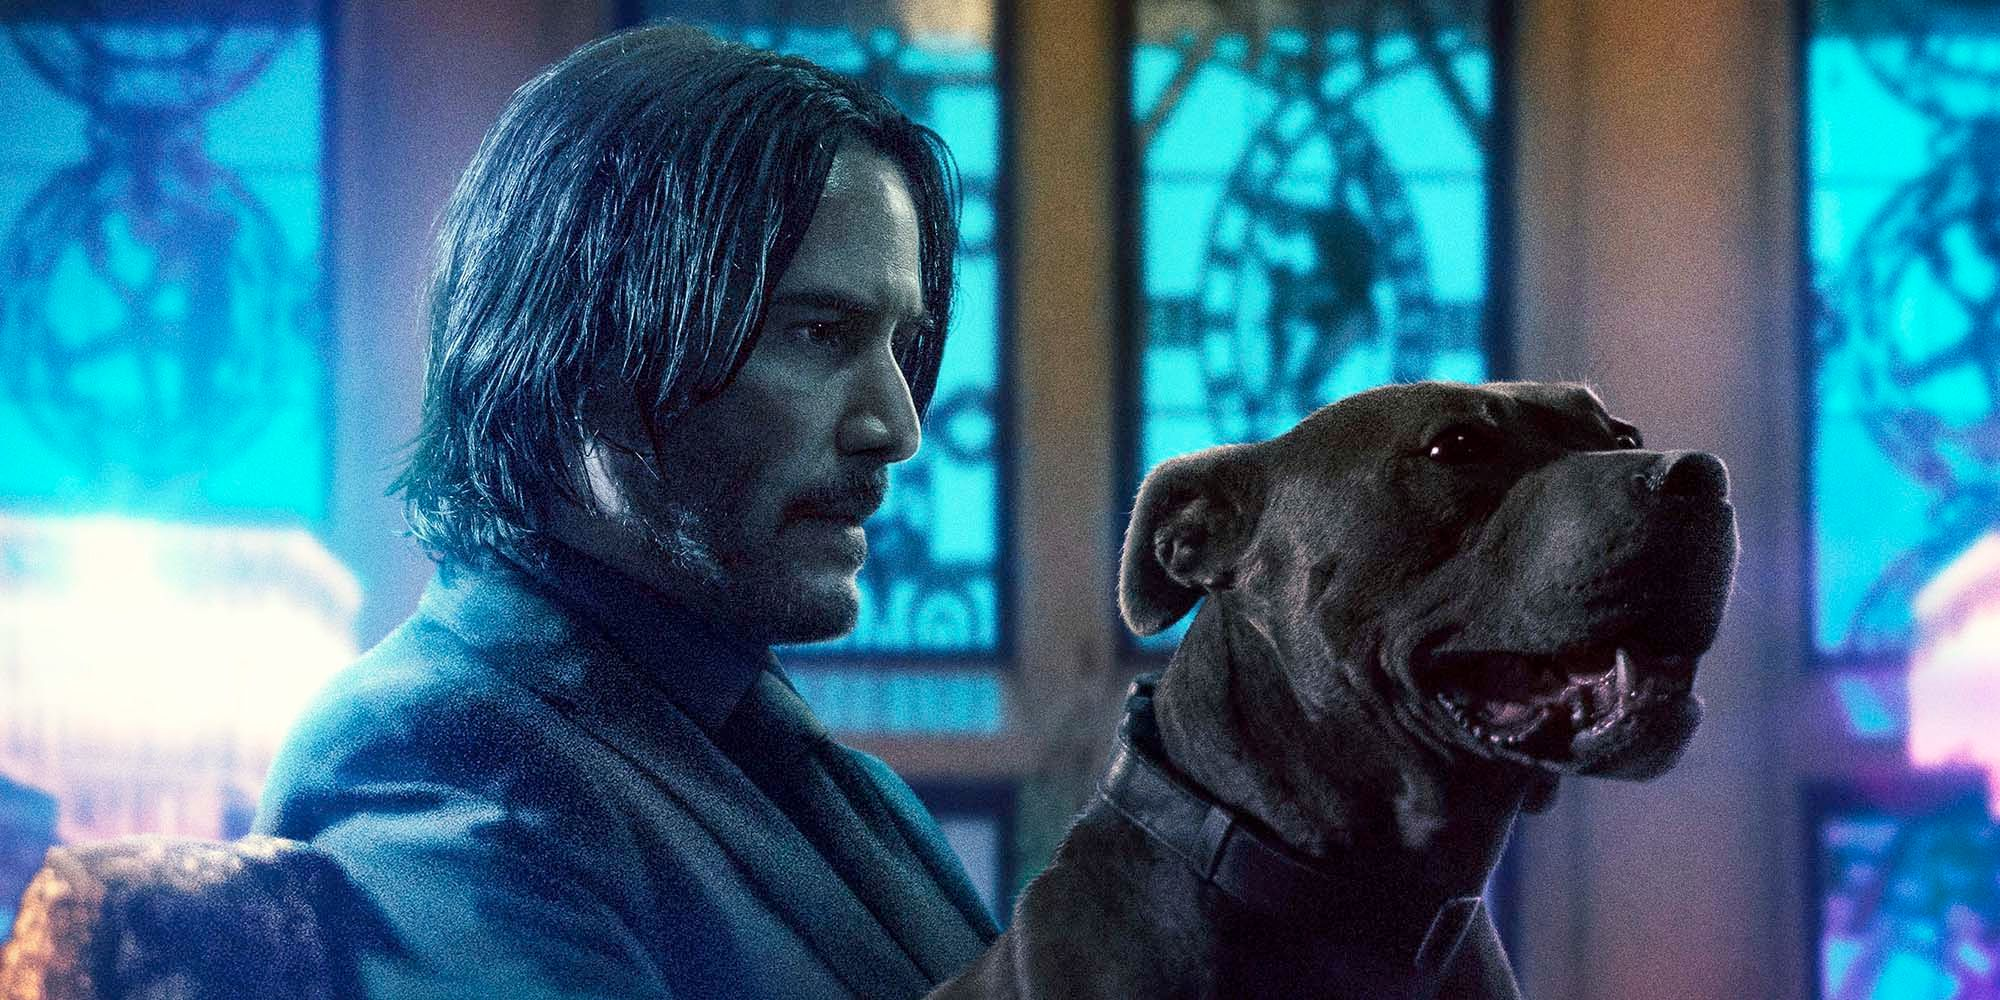 John Wick: Chapter 3 - Parabellum Tickets Now Available Online